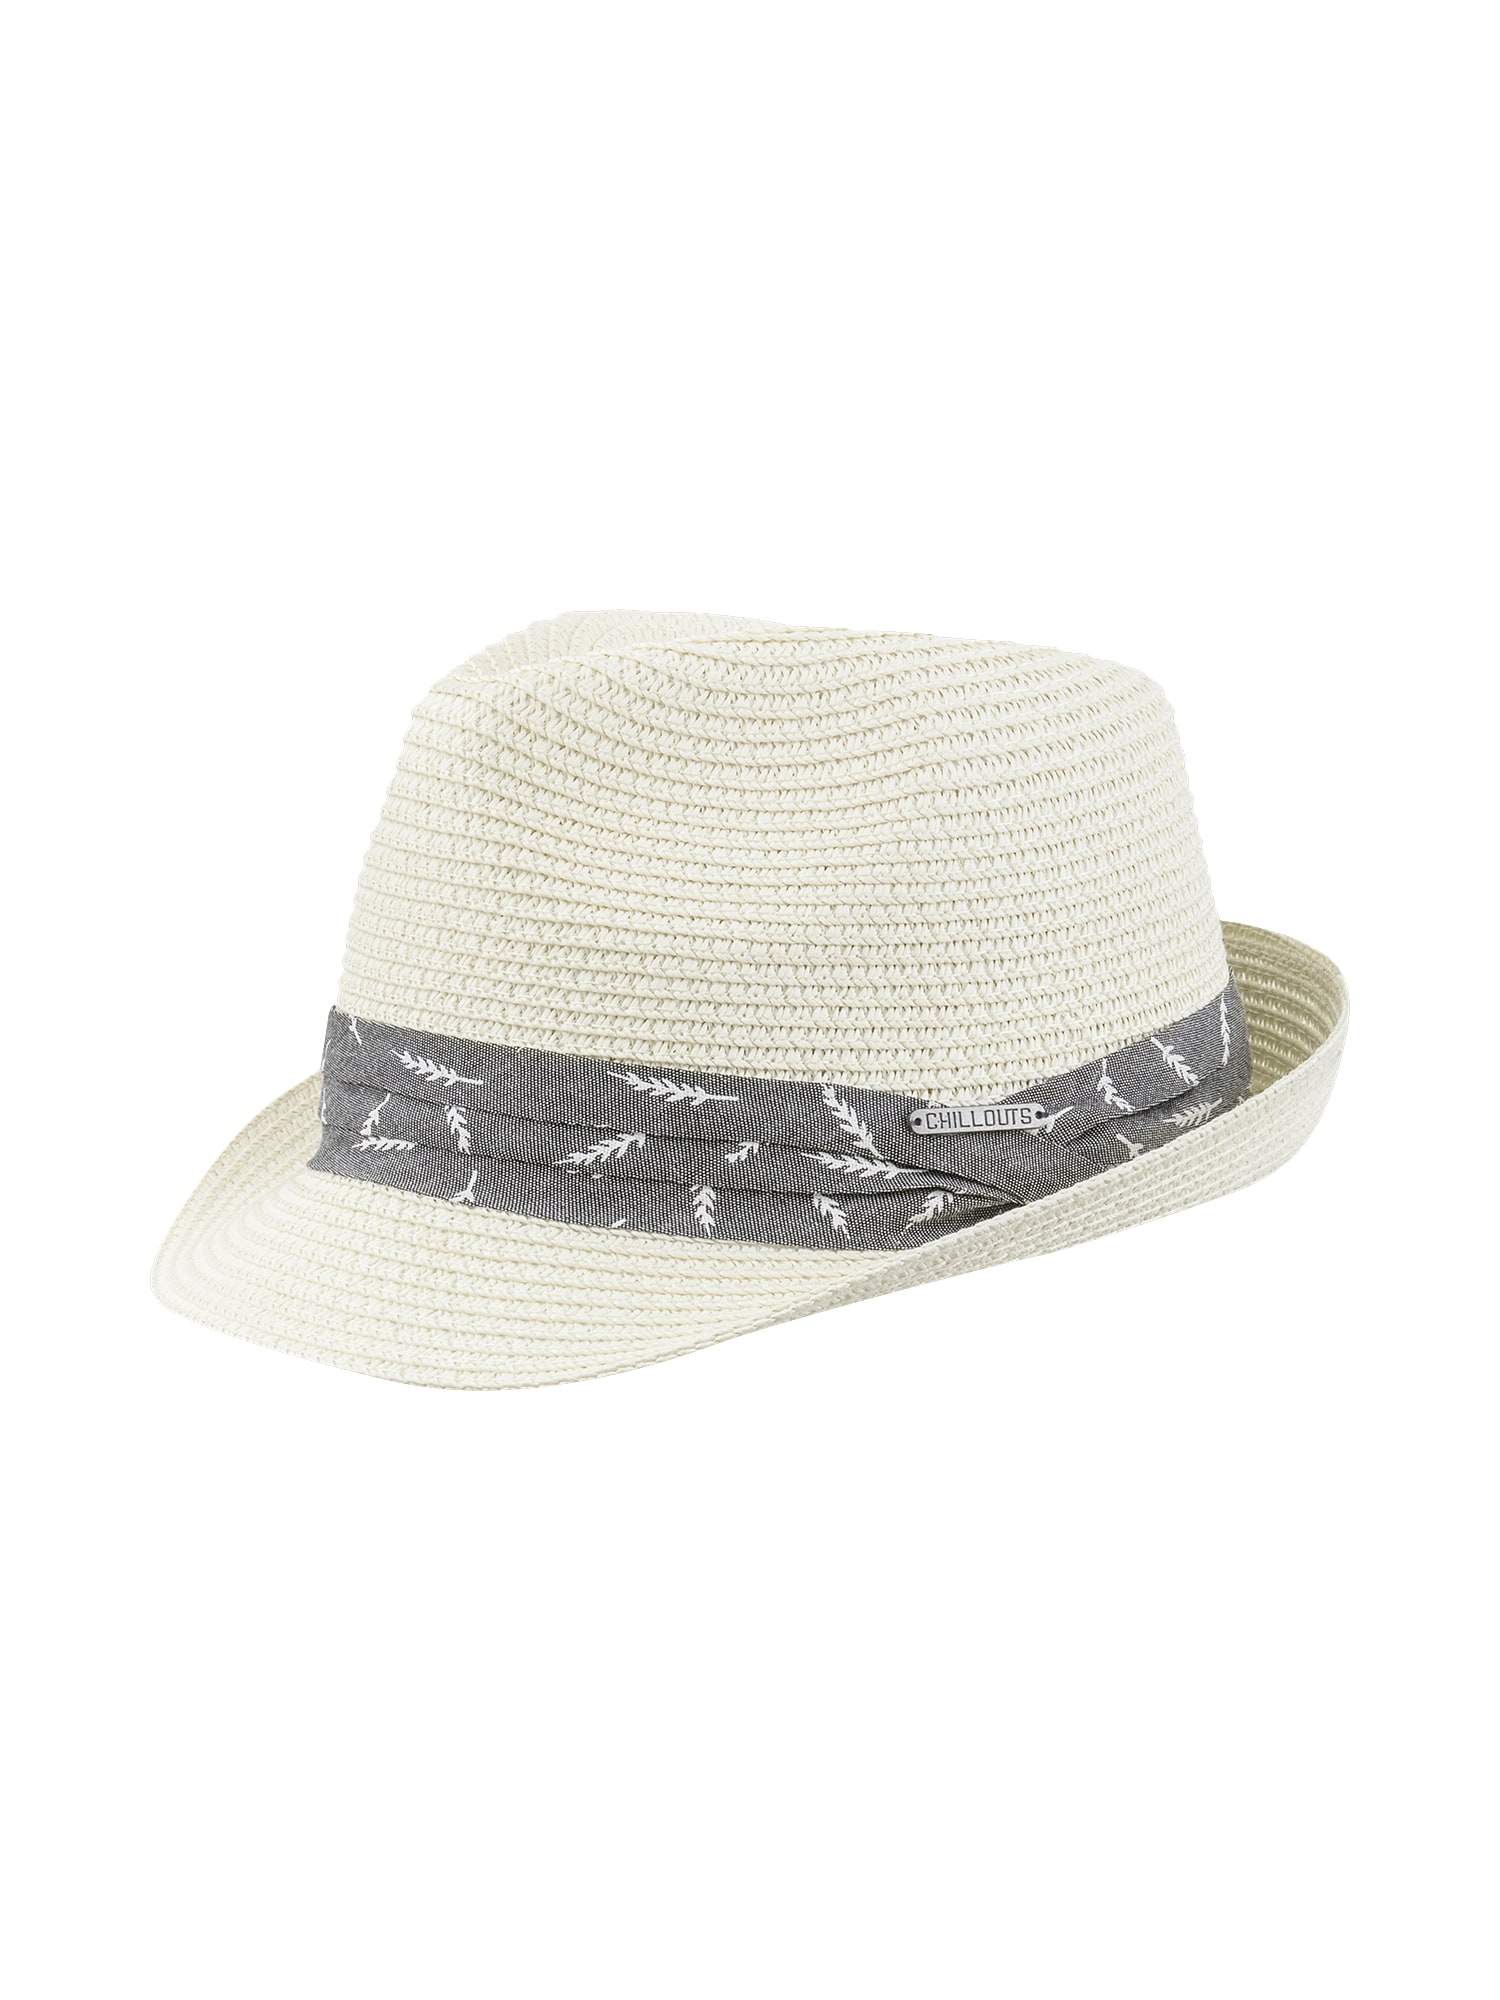 Chillouts, Dames Hoed 'Derry', offwhite